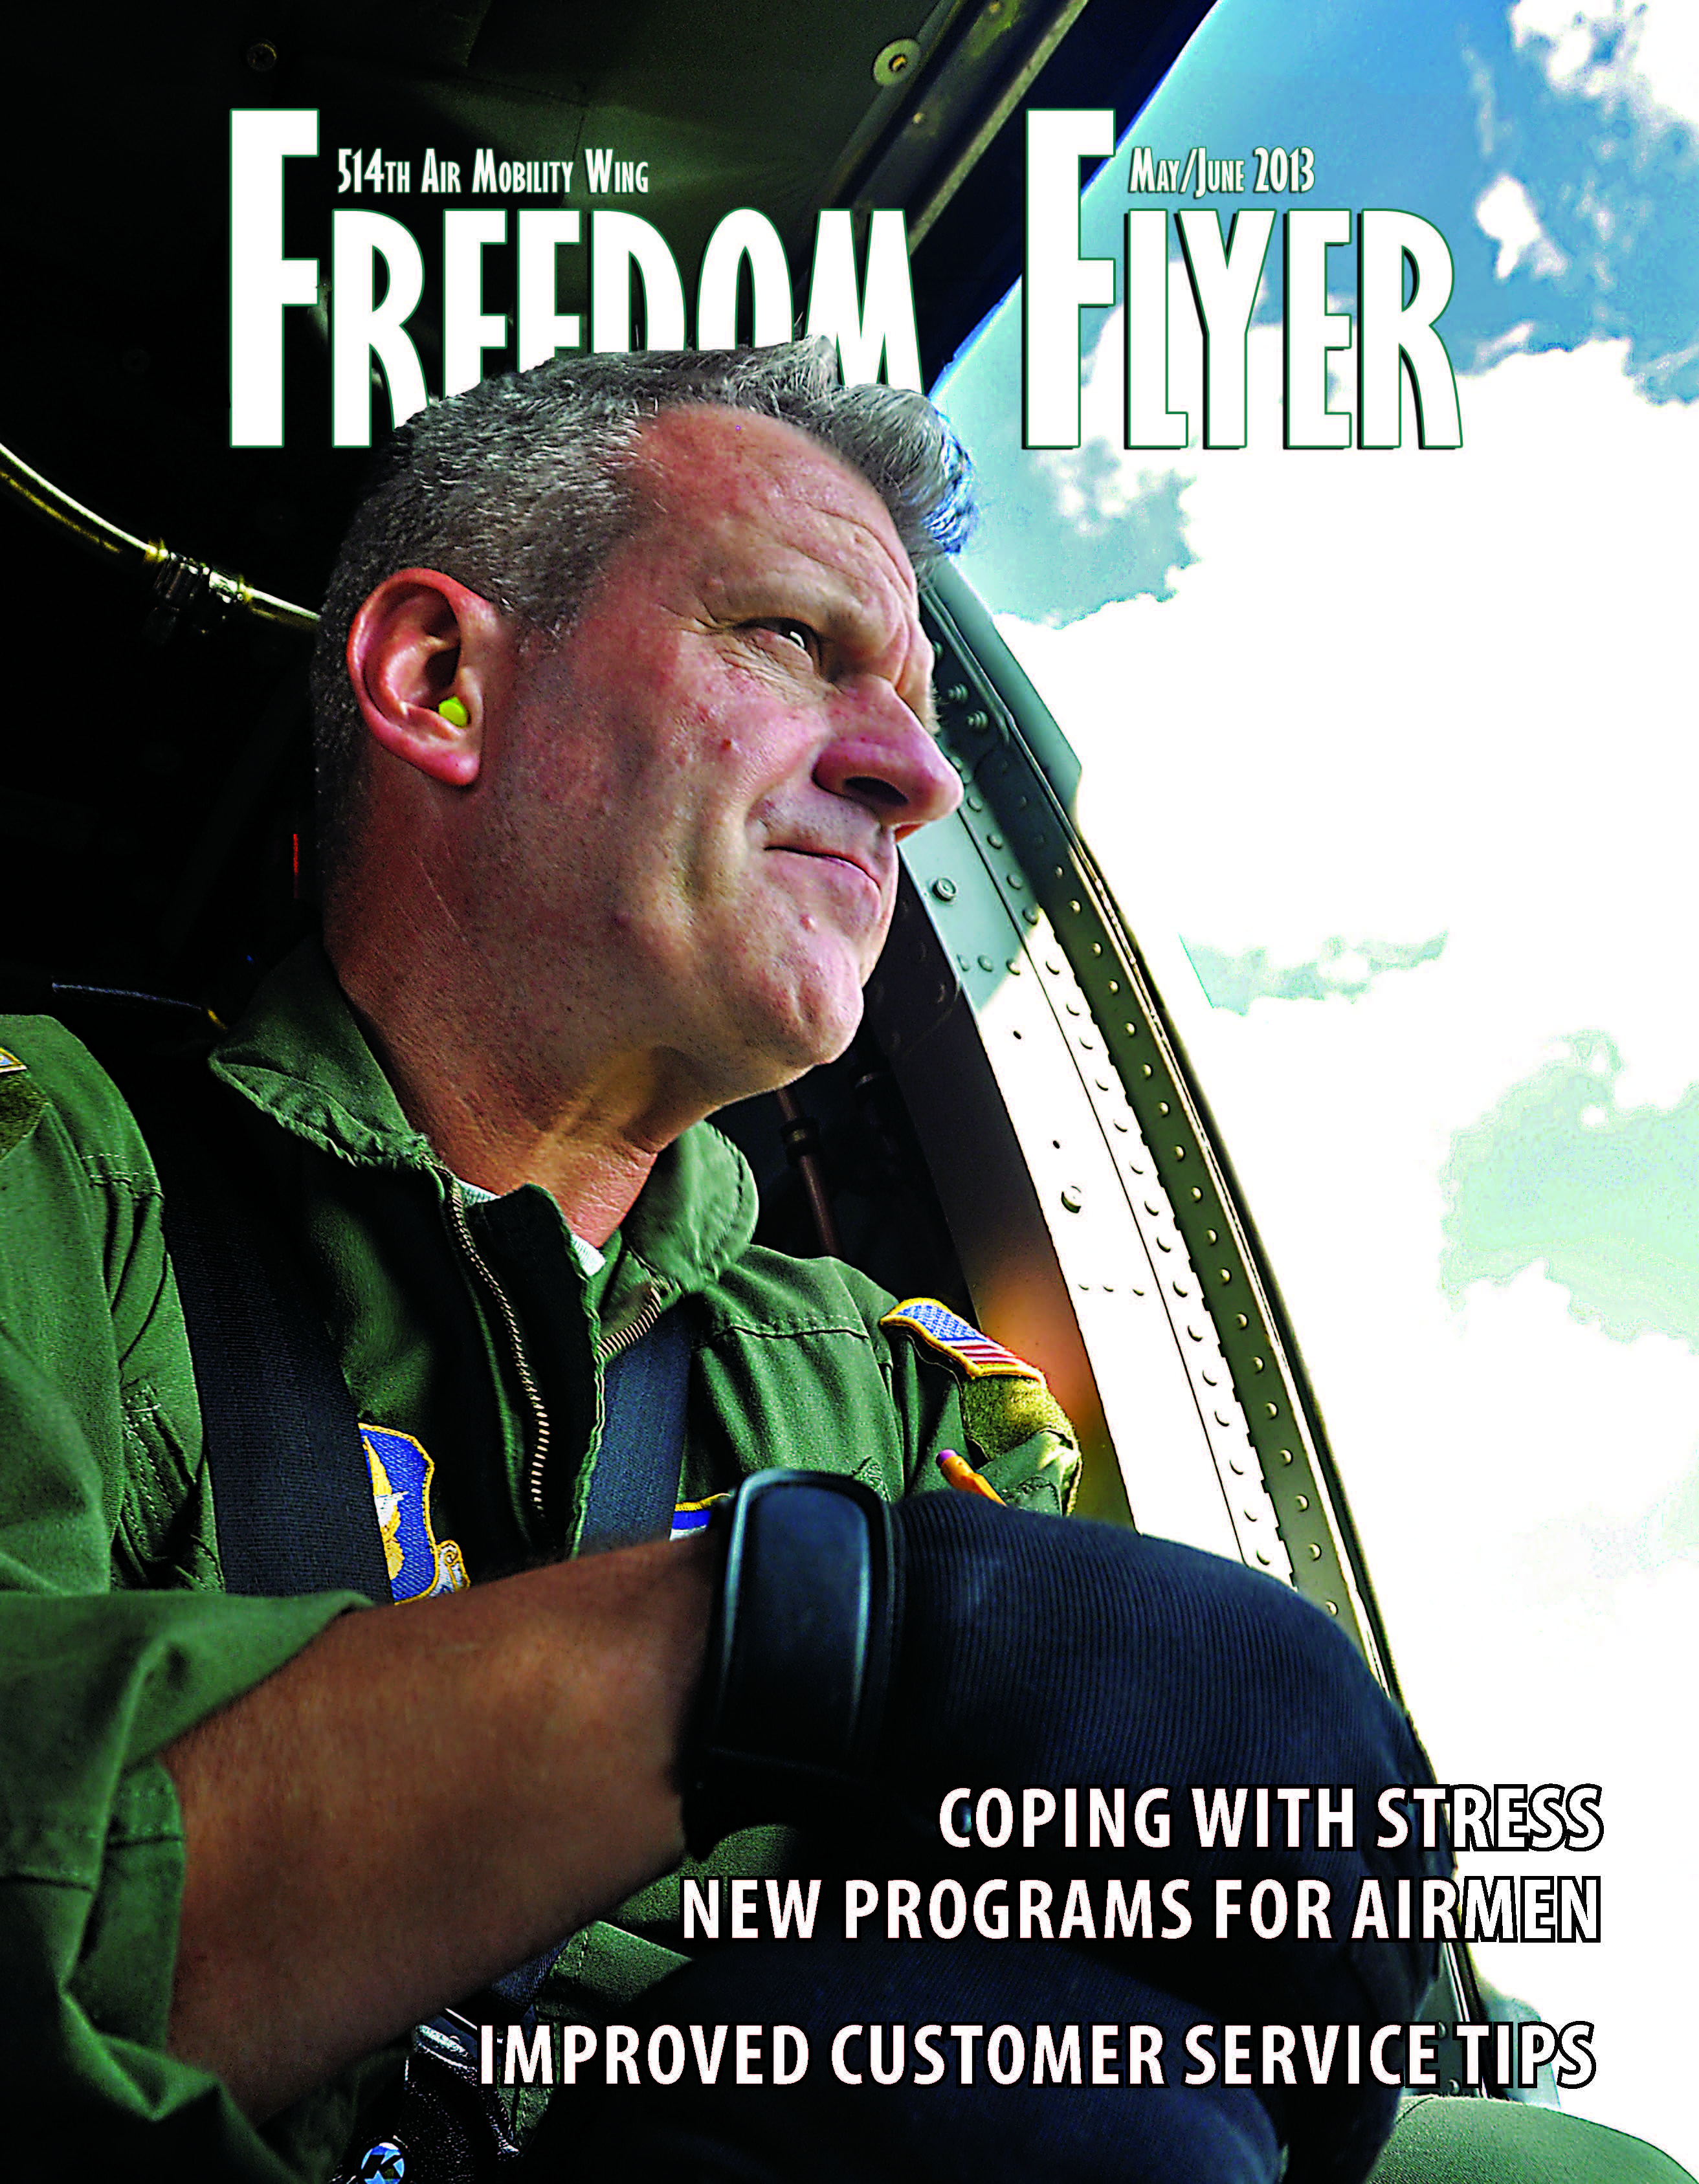 Freedom Flyer - May/June 2013